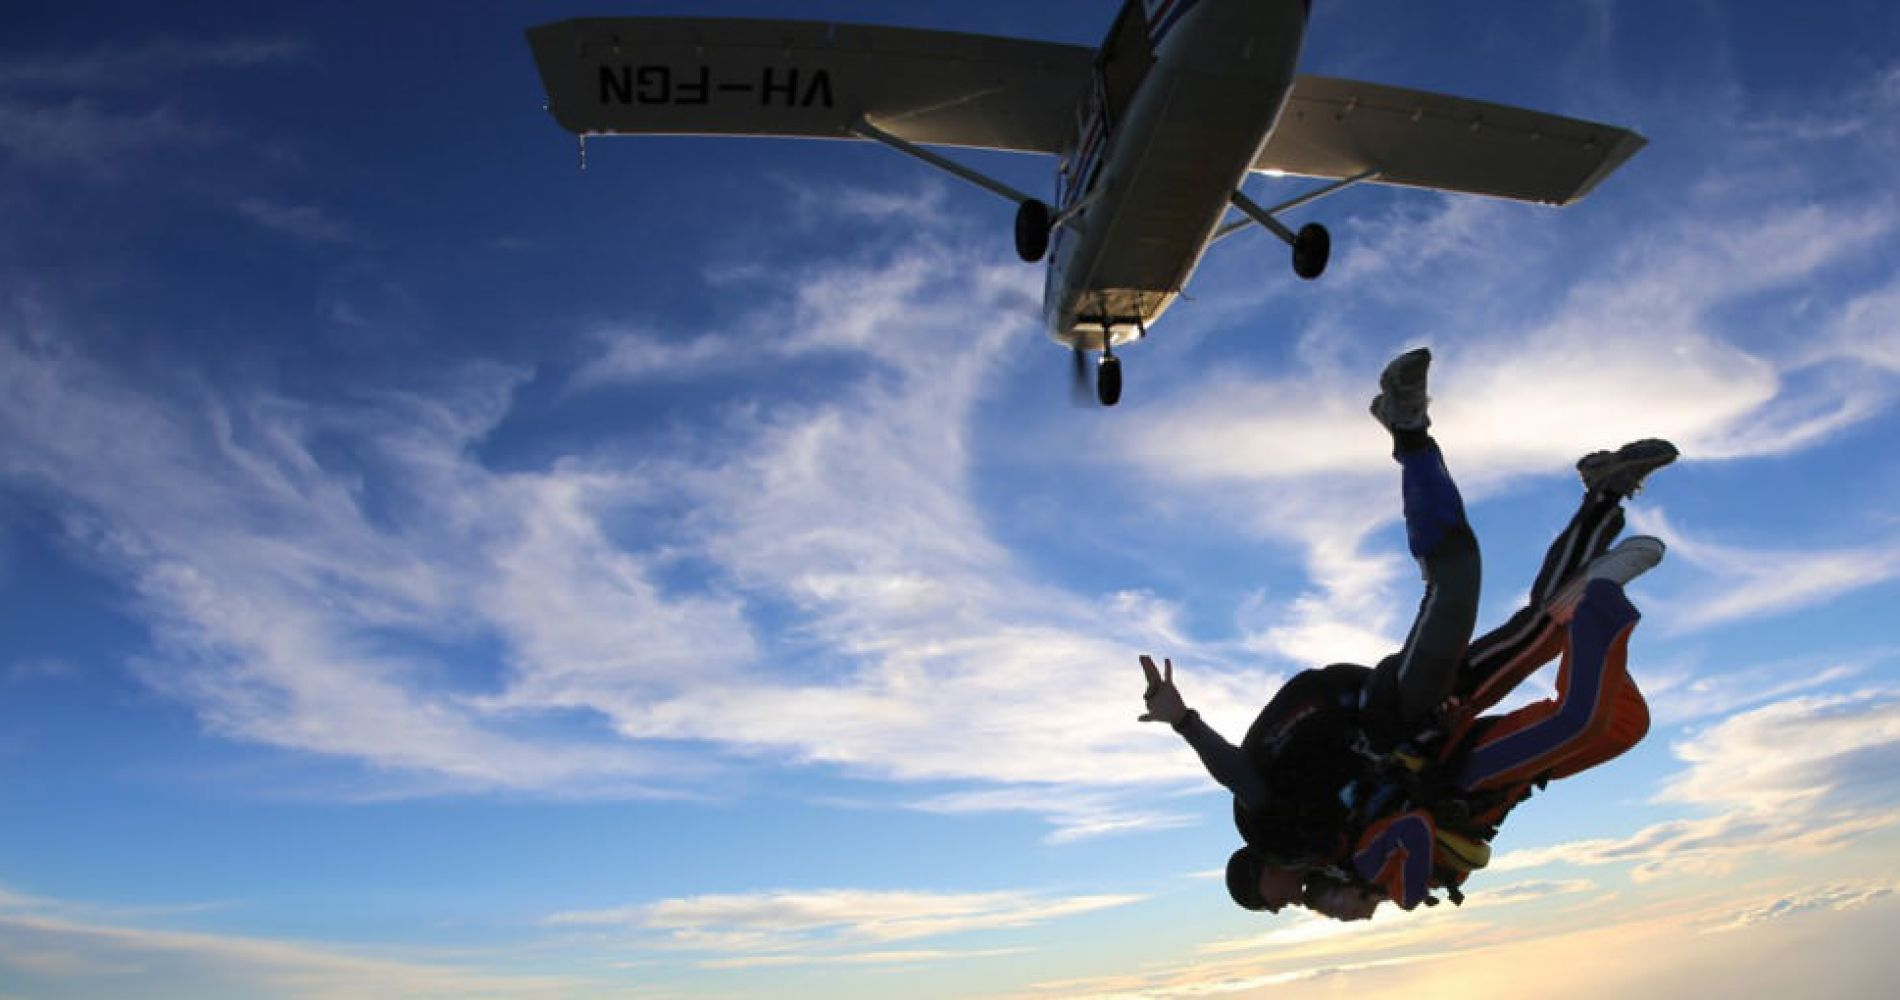 Perth tandem skydiving experience gifts